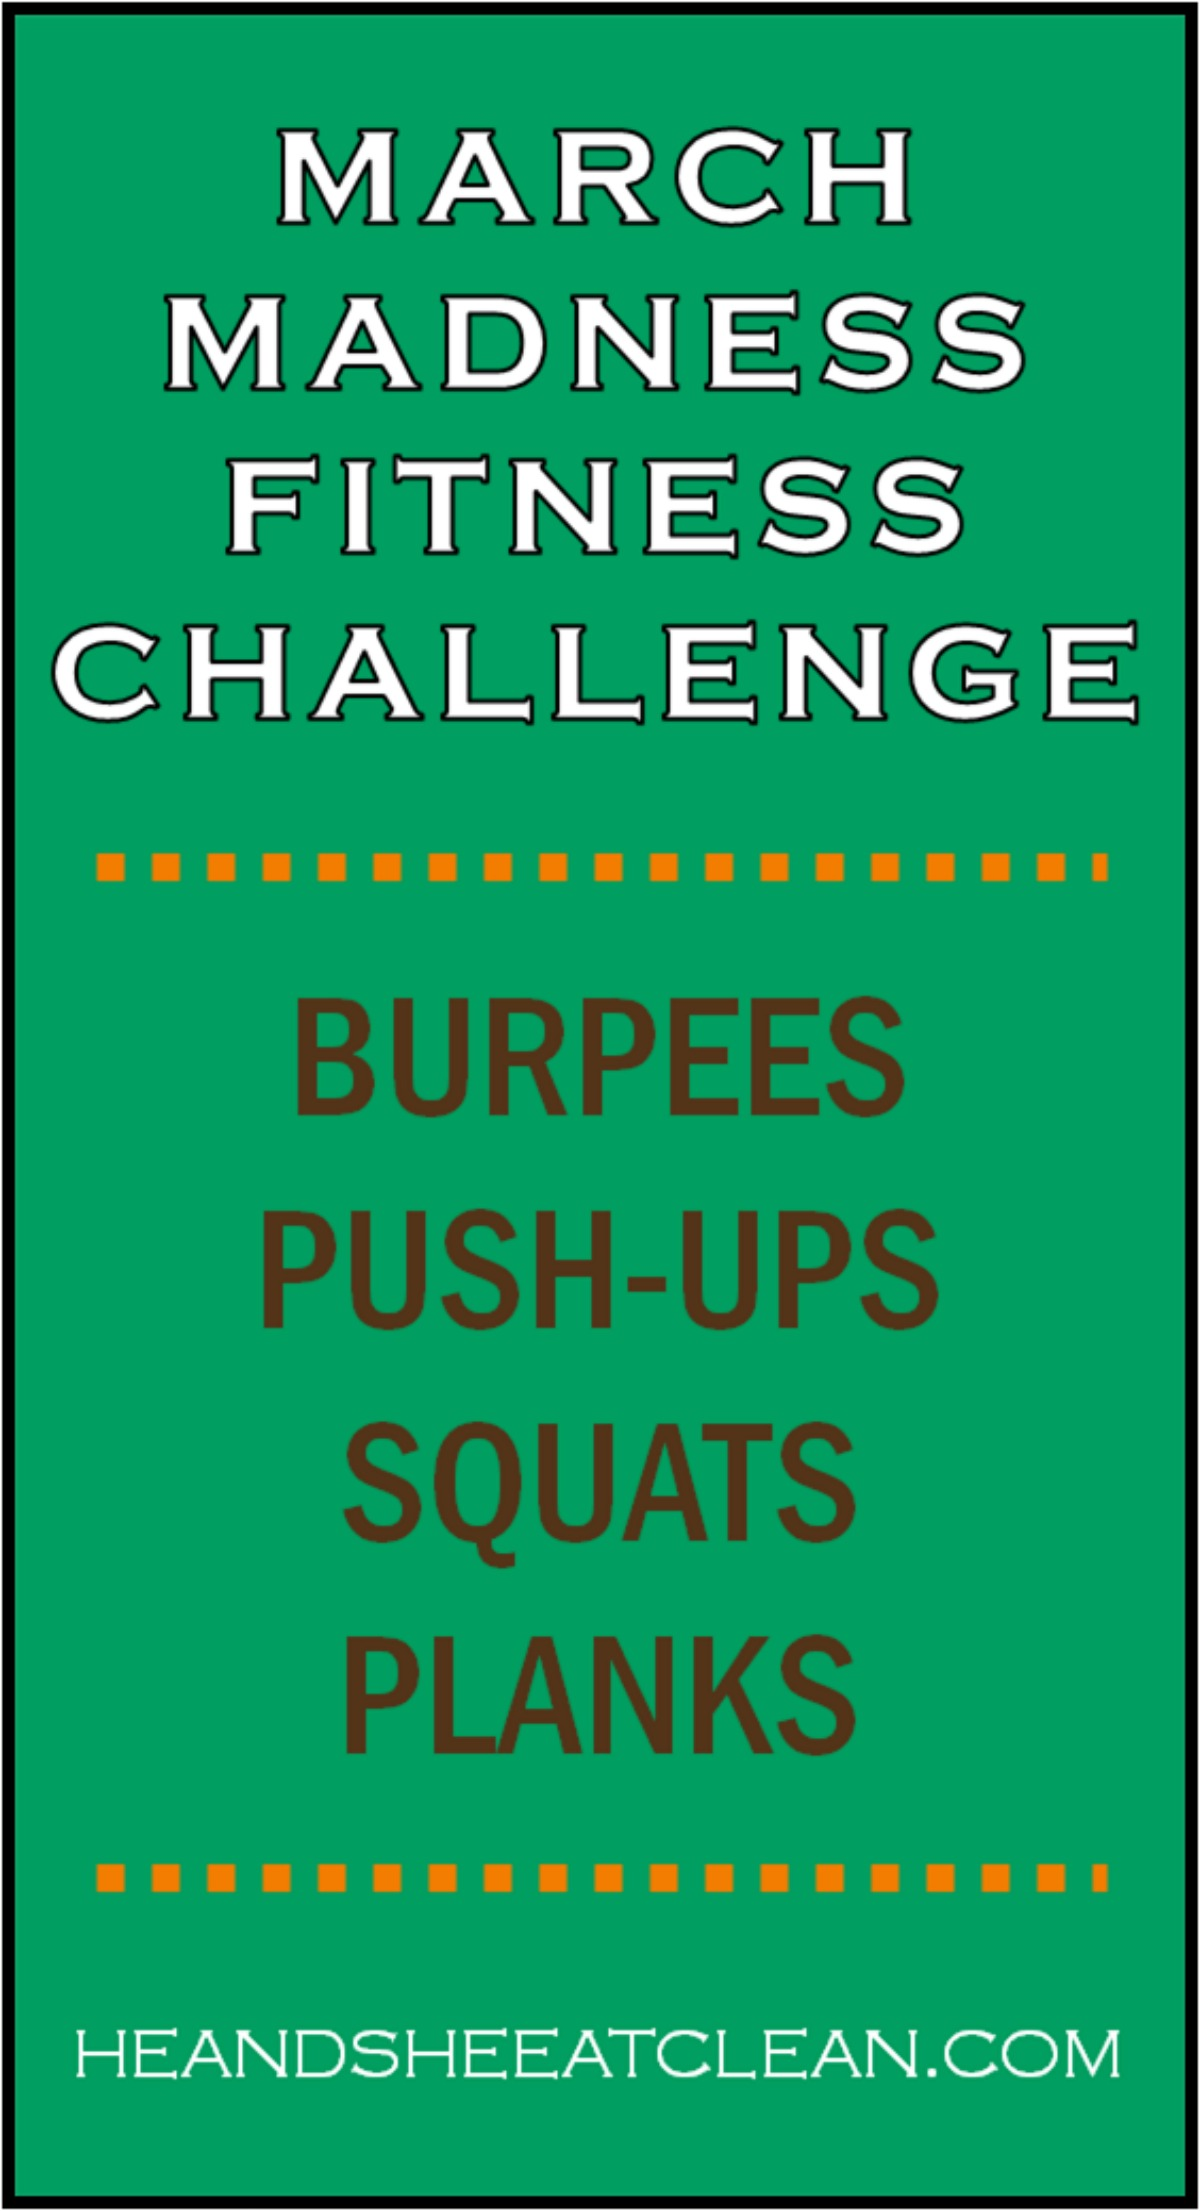 March Madness Fitness Challenge with listed exercises